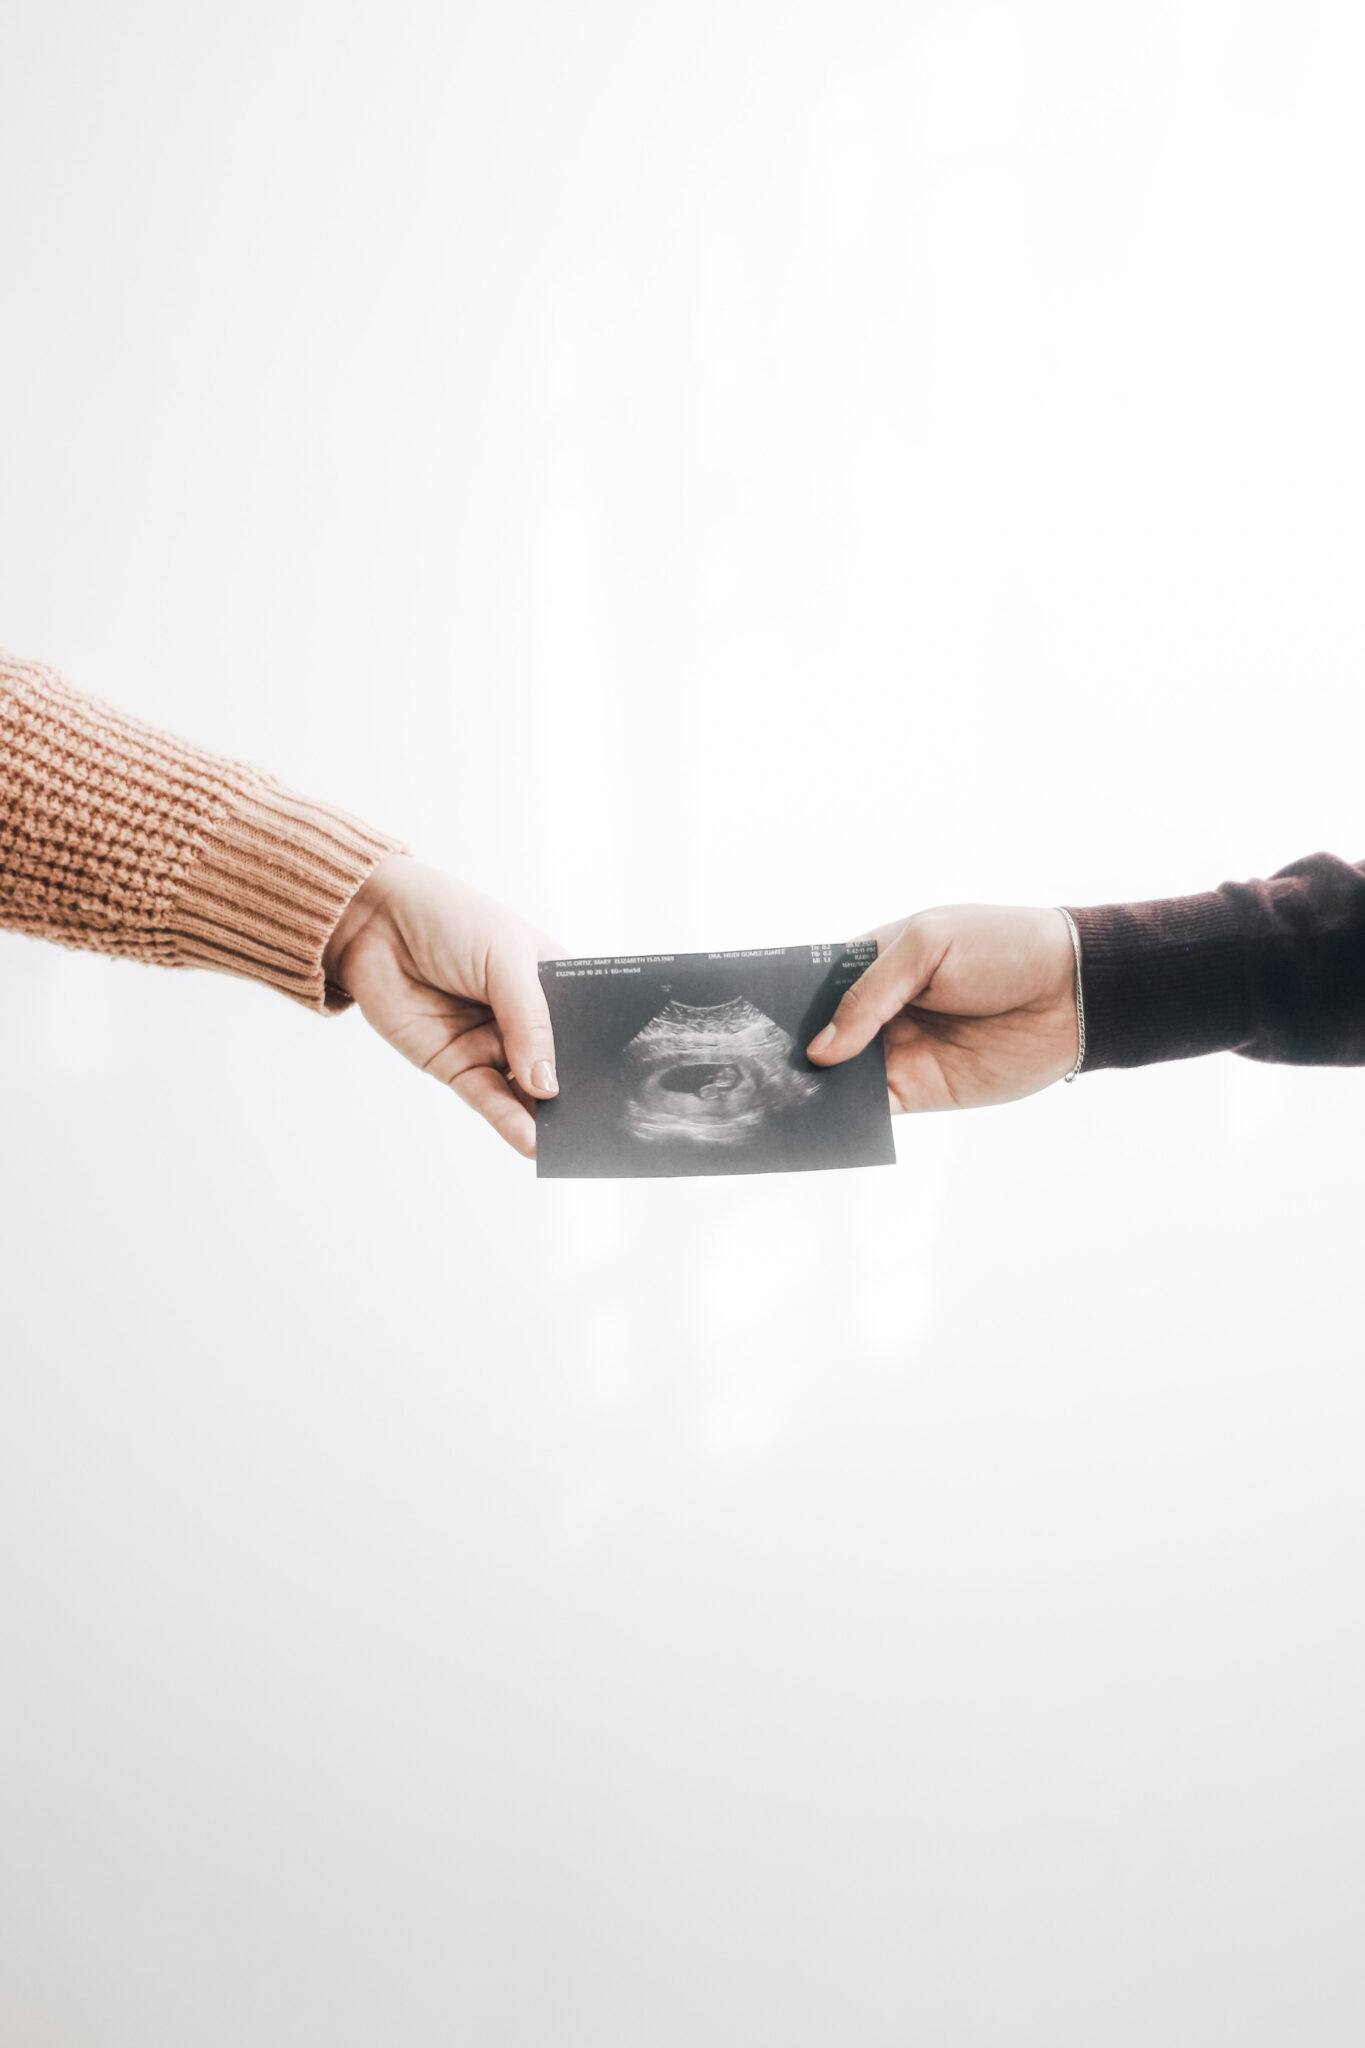 A man and a woman's hand are shown holding an ultrasound.